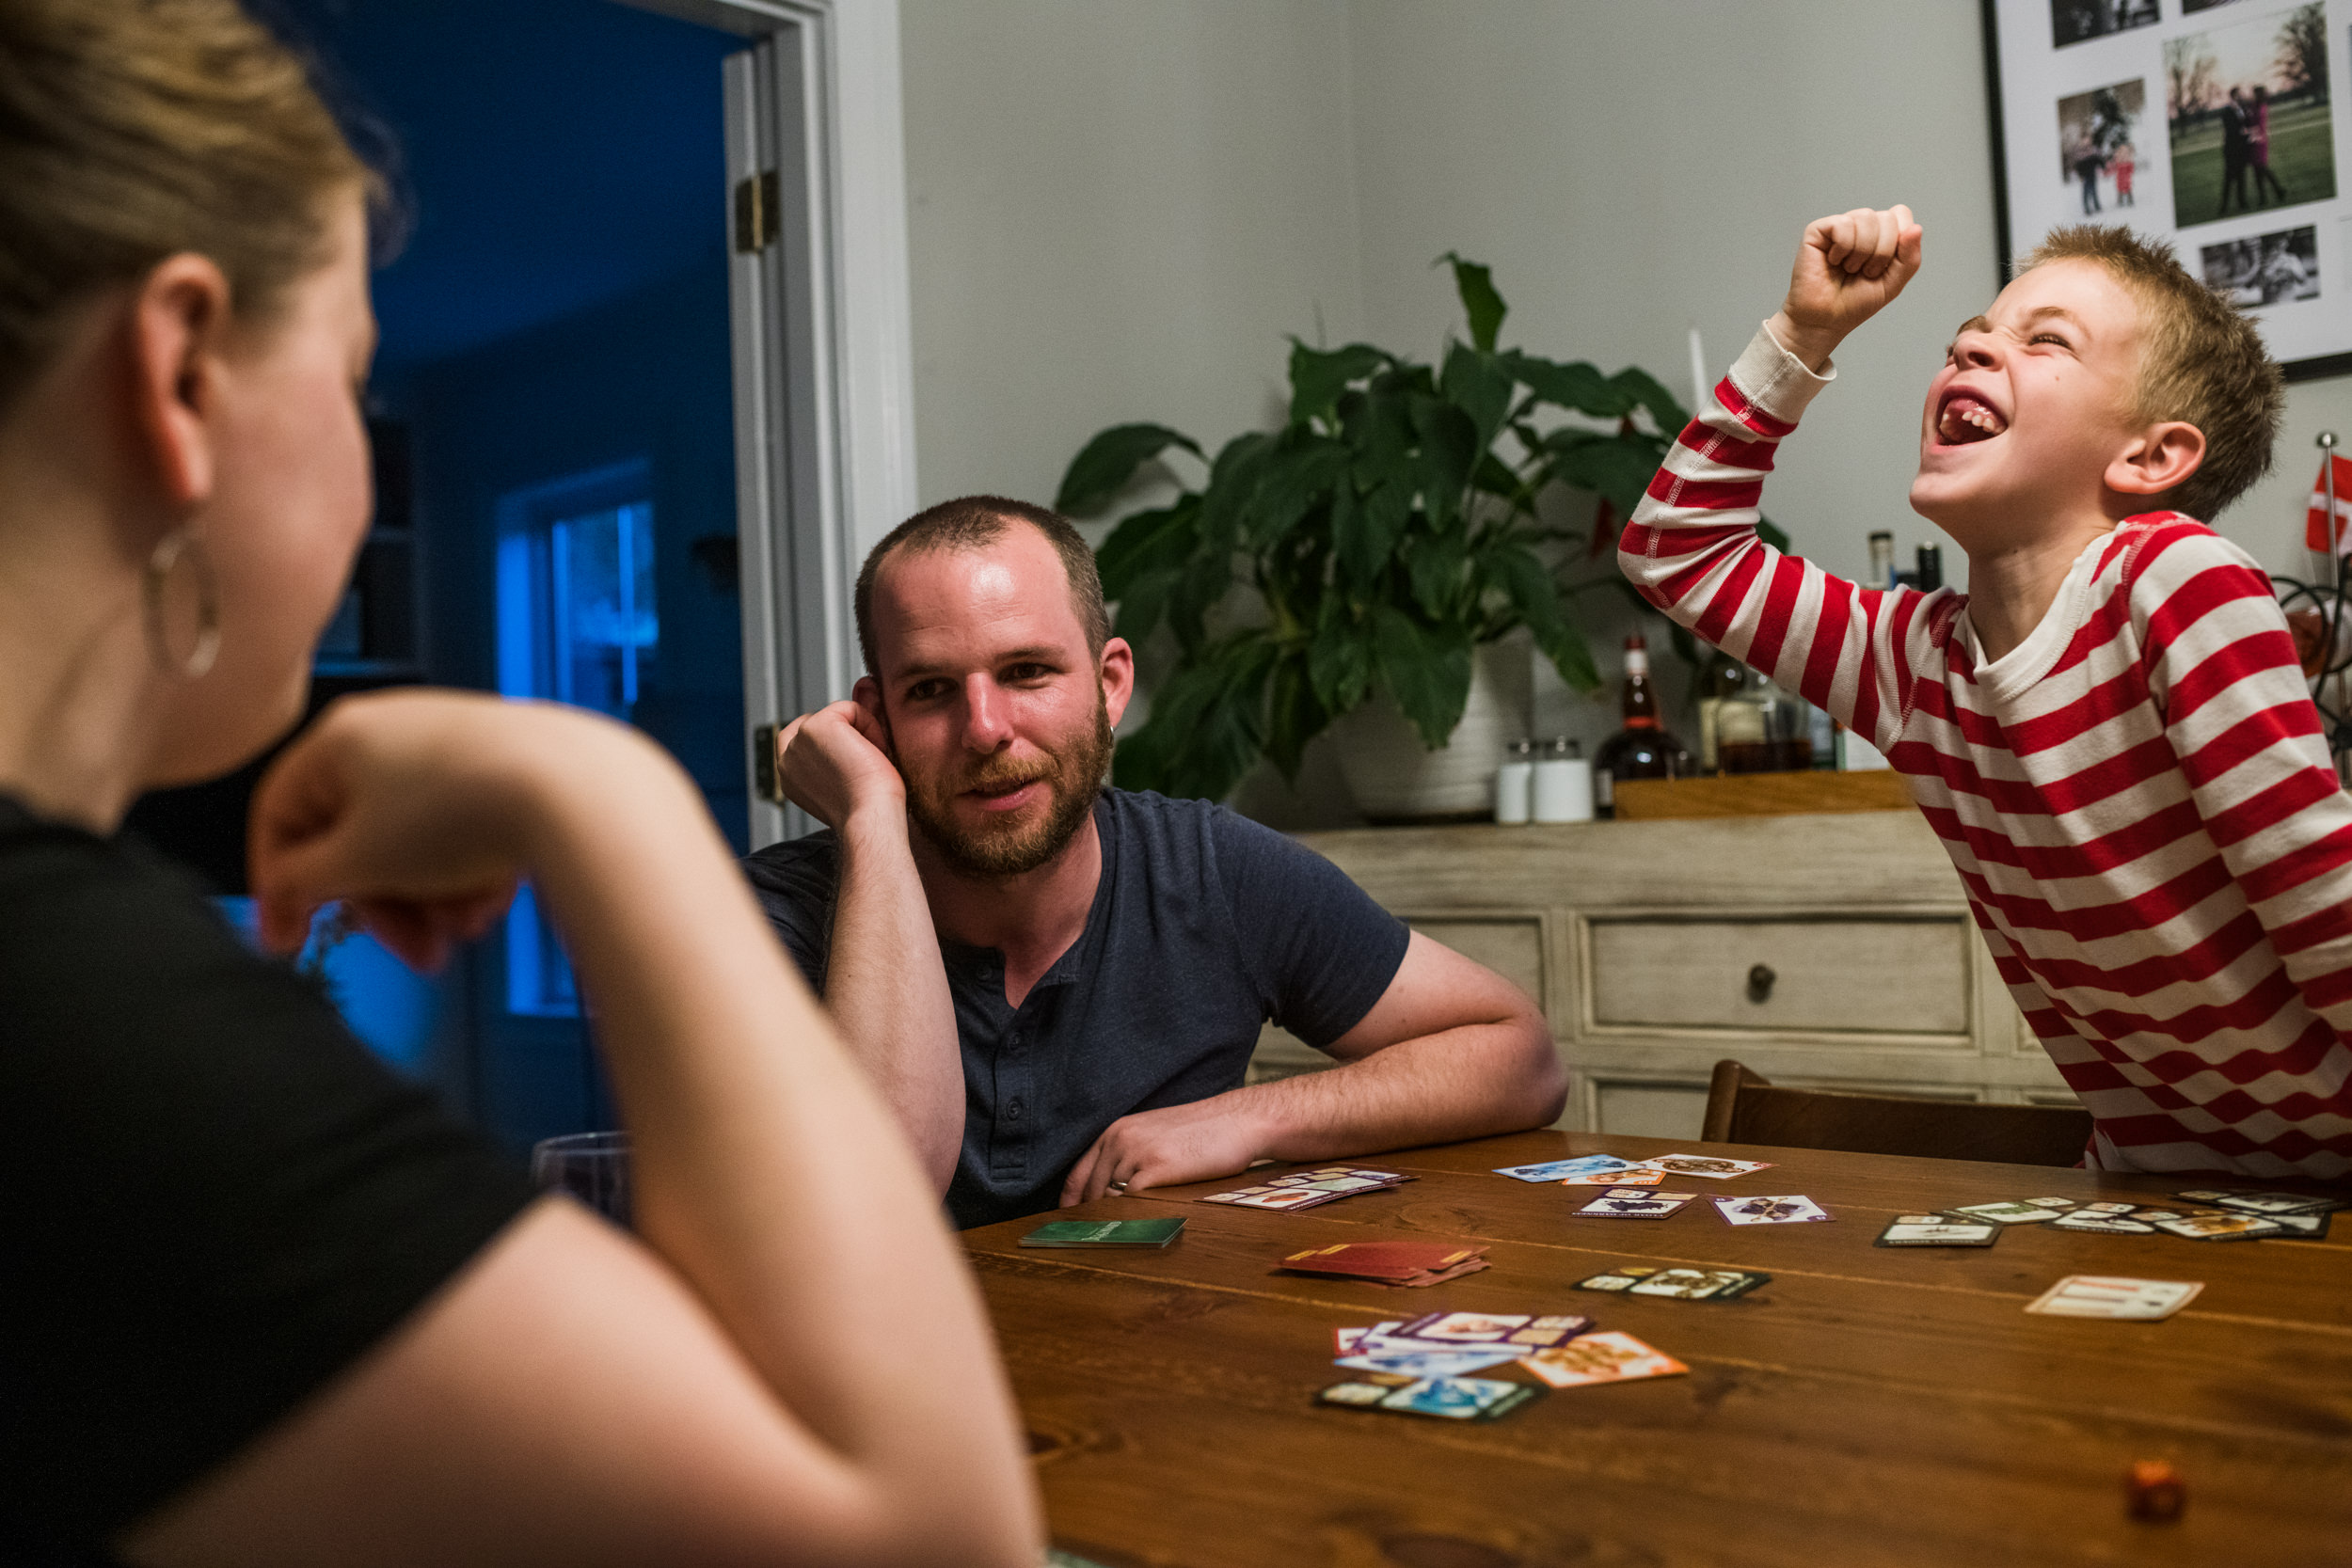 Parents are enjoying some one-on-one time playing a game with their son.